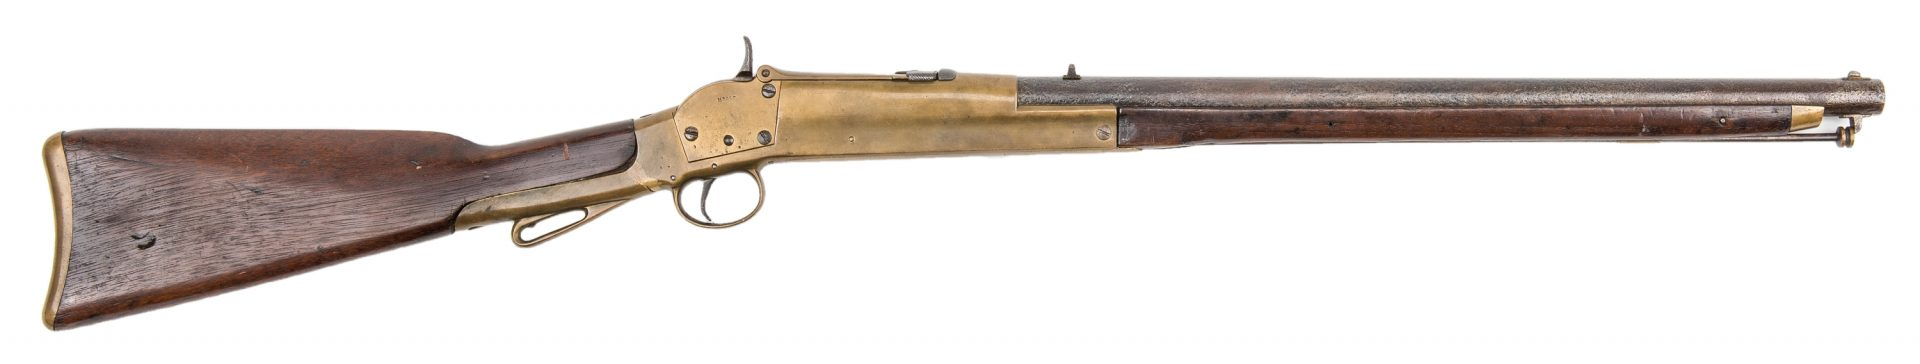 Lot 294: Morse Marked Brass Framed Carbine, SN# 1007